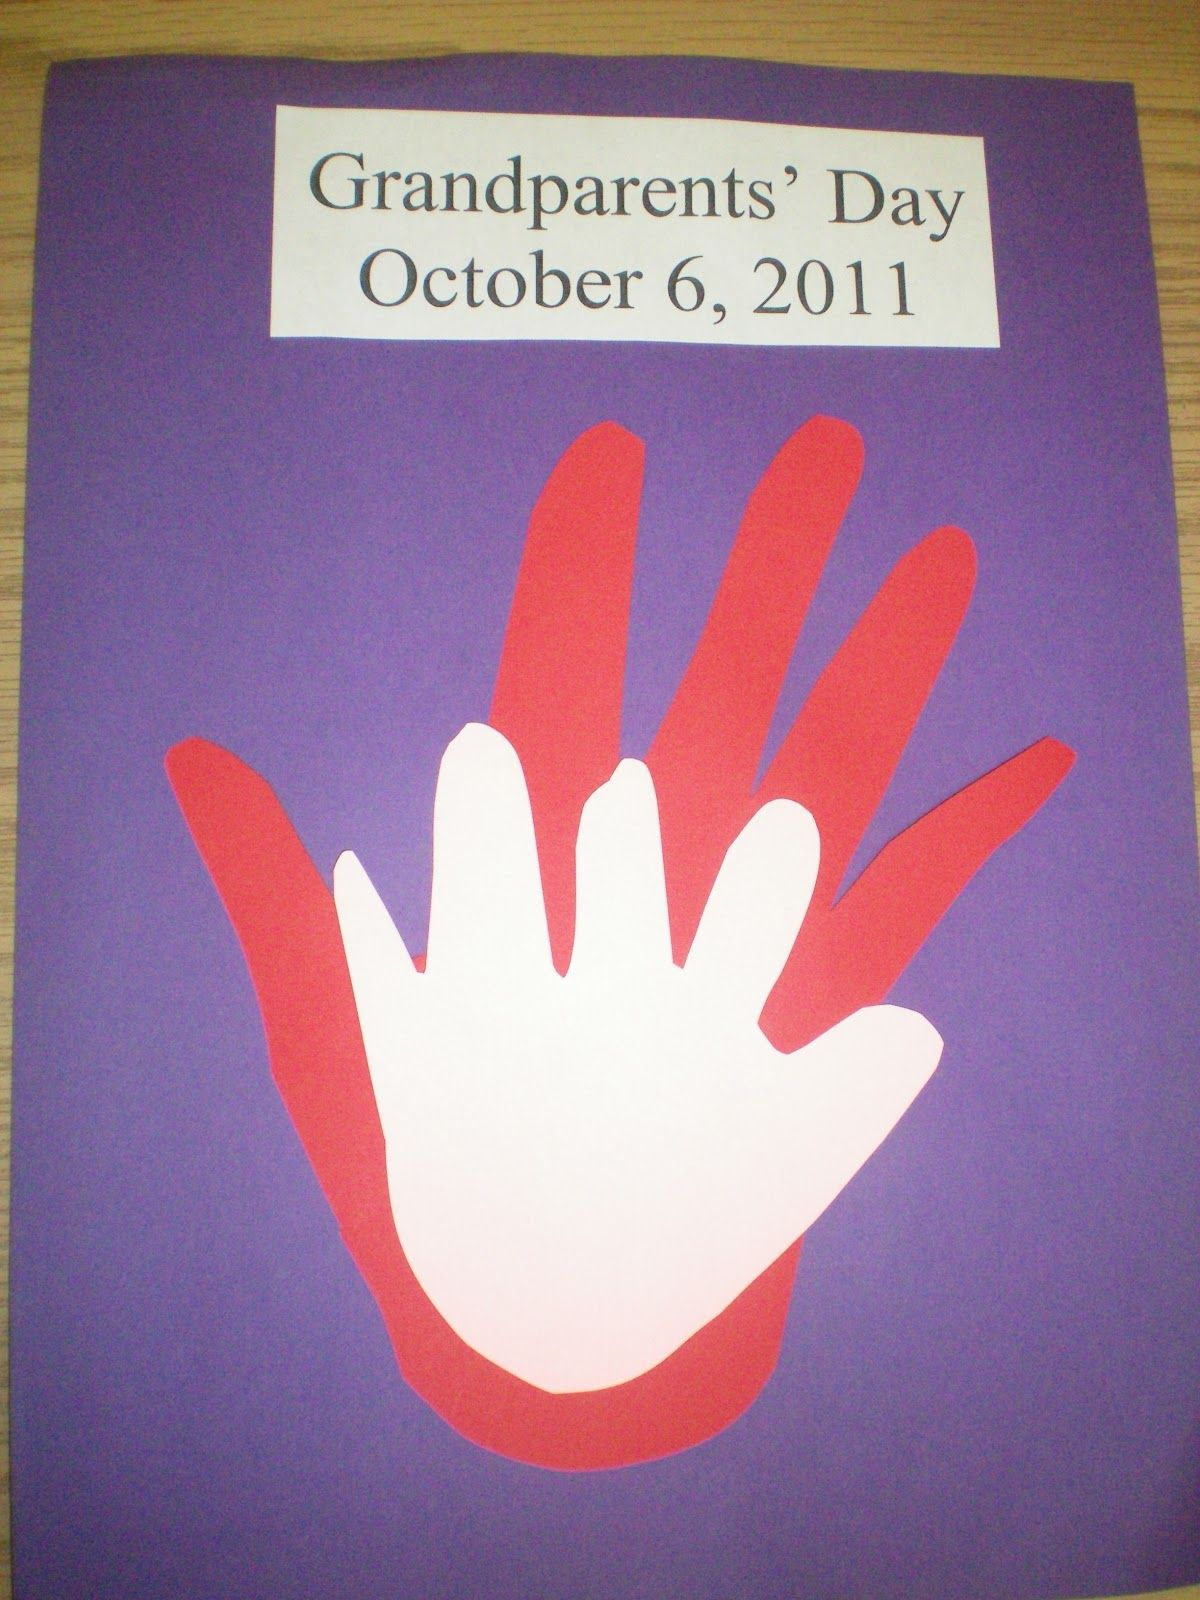 Grandparents Day Craft Ideas For Kids Part - 15: Grandparents Day-fun Craft Activity For Grandparents And Kids To Do  Together. Other Ideas On Linked Page For Activities. Handprint Within A  Handprint.